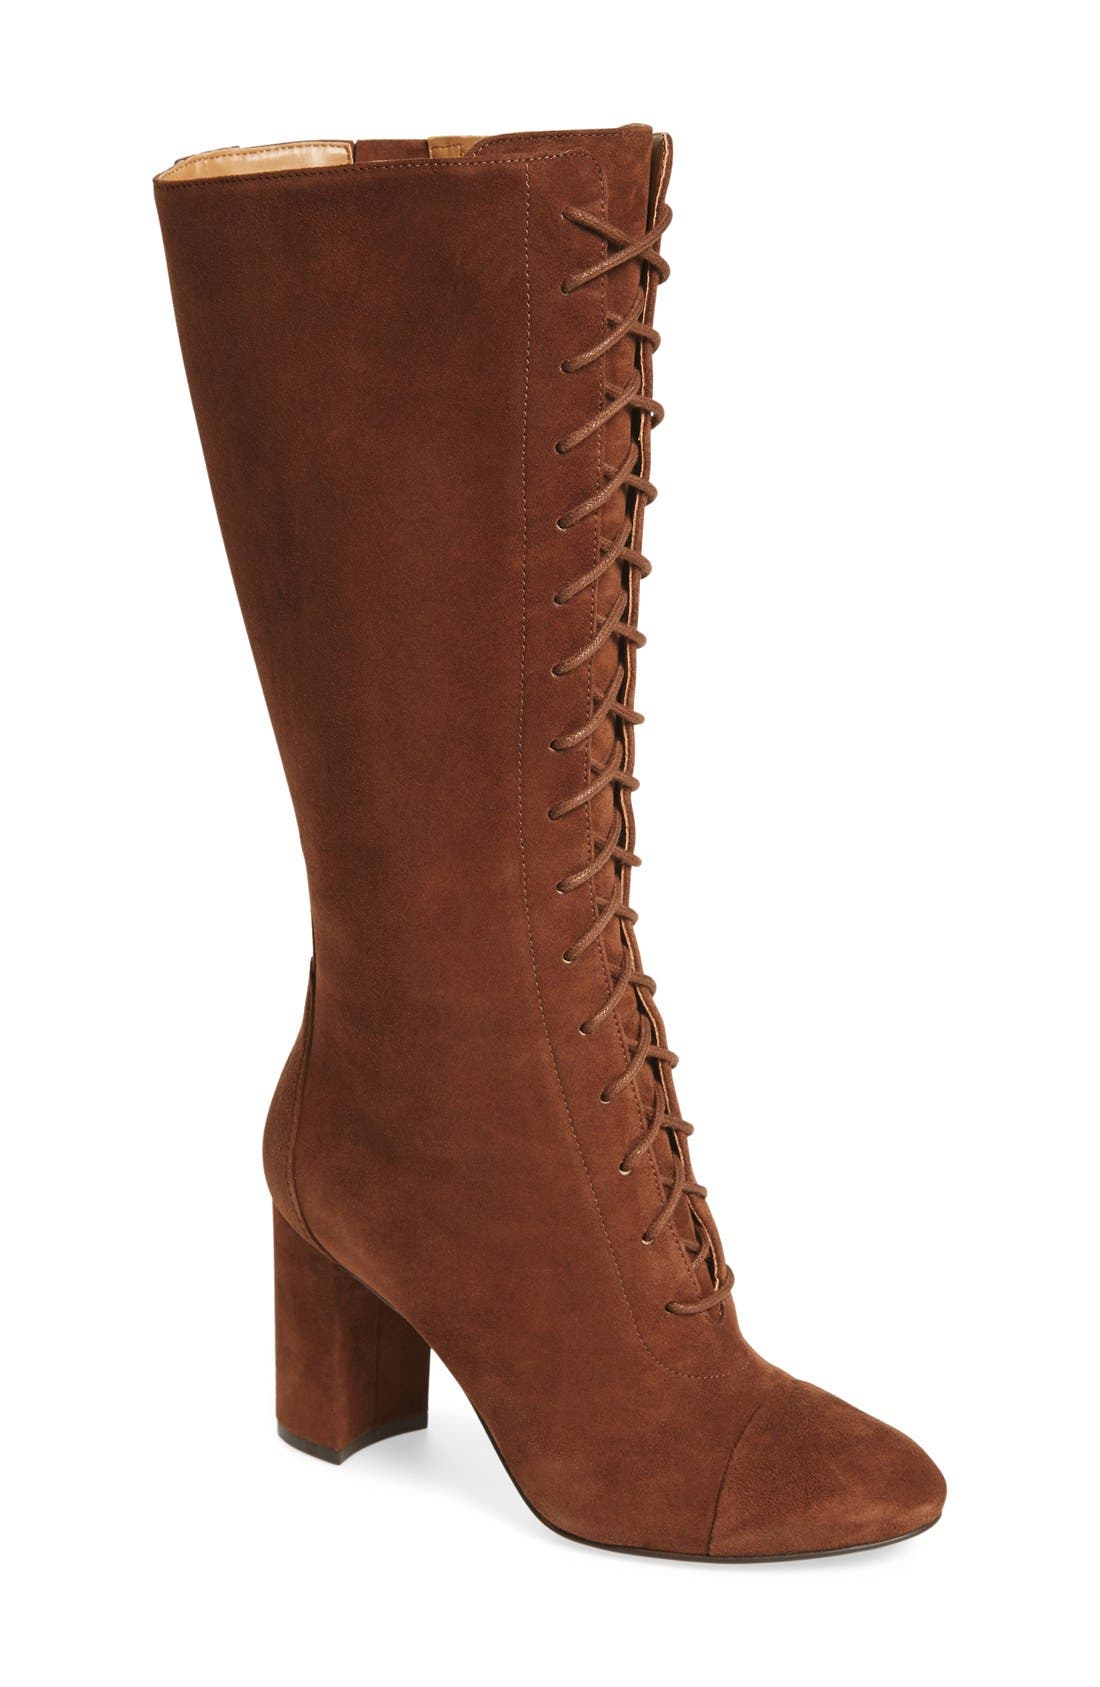 Alternate Image 1 Selected - Nine West 'Waterfall' Lace-Up Knee High Boot (Women)